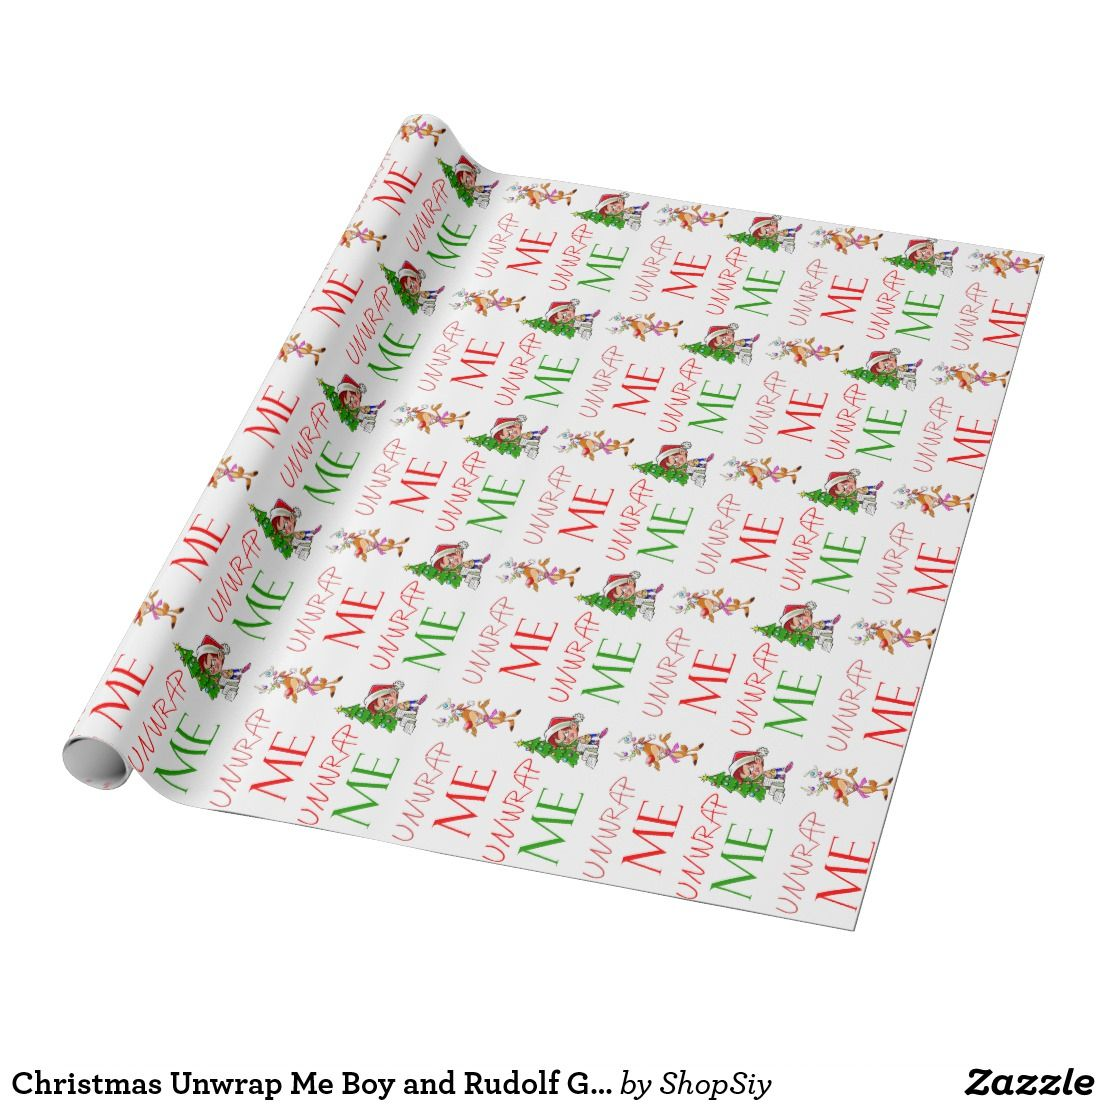 Christmas Unwrap Me Boy And Rudolf Gift Wrap Zazzle Ca Christmas Gift Shop Gift Wrapping Custom Wrapping Paper